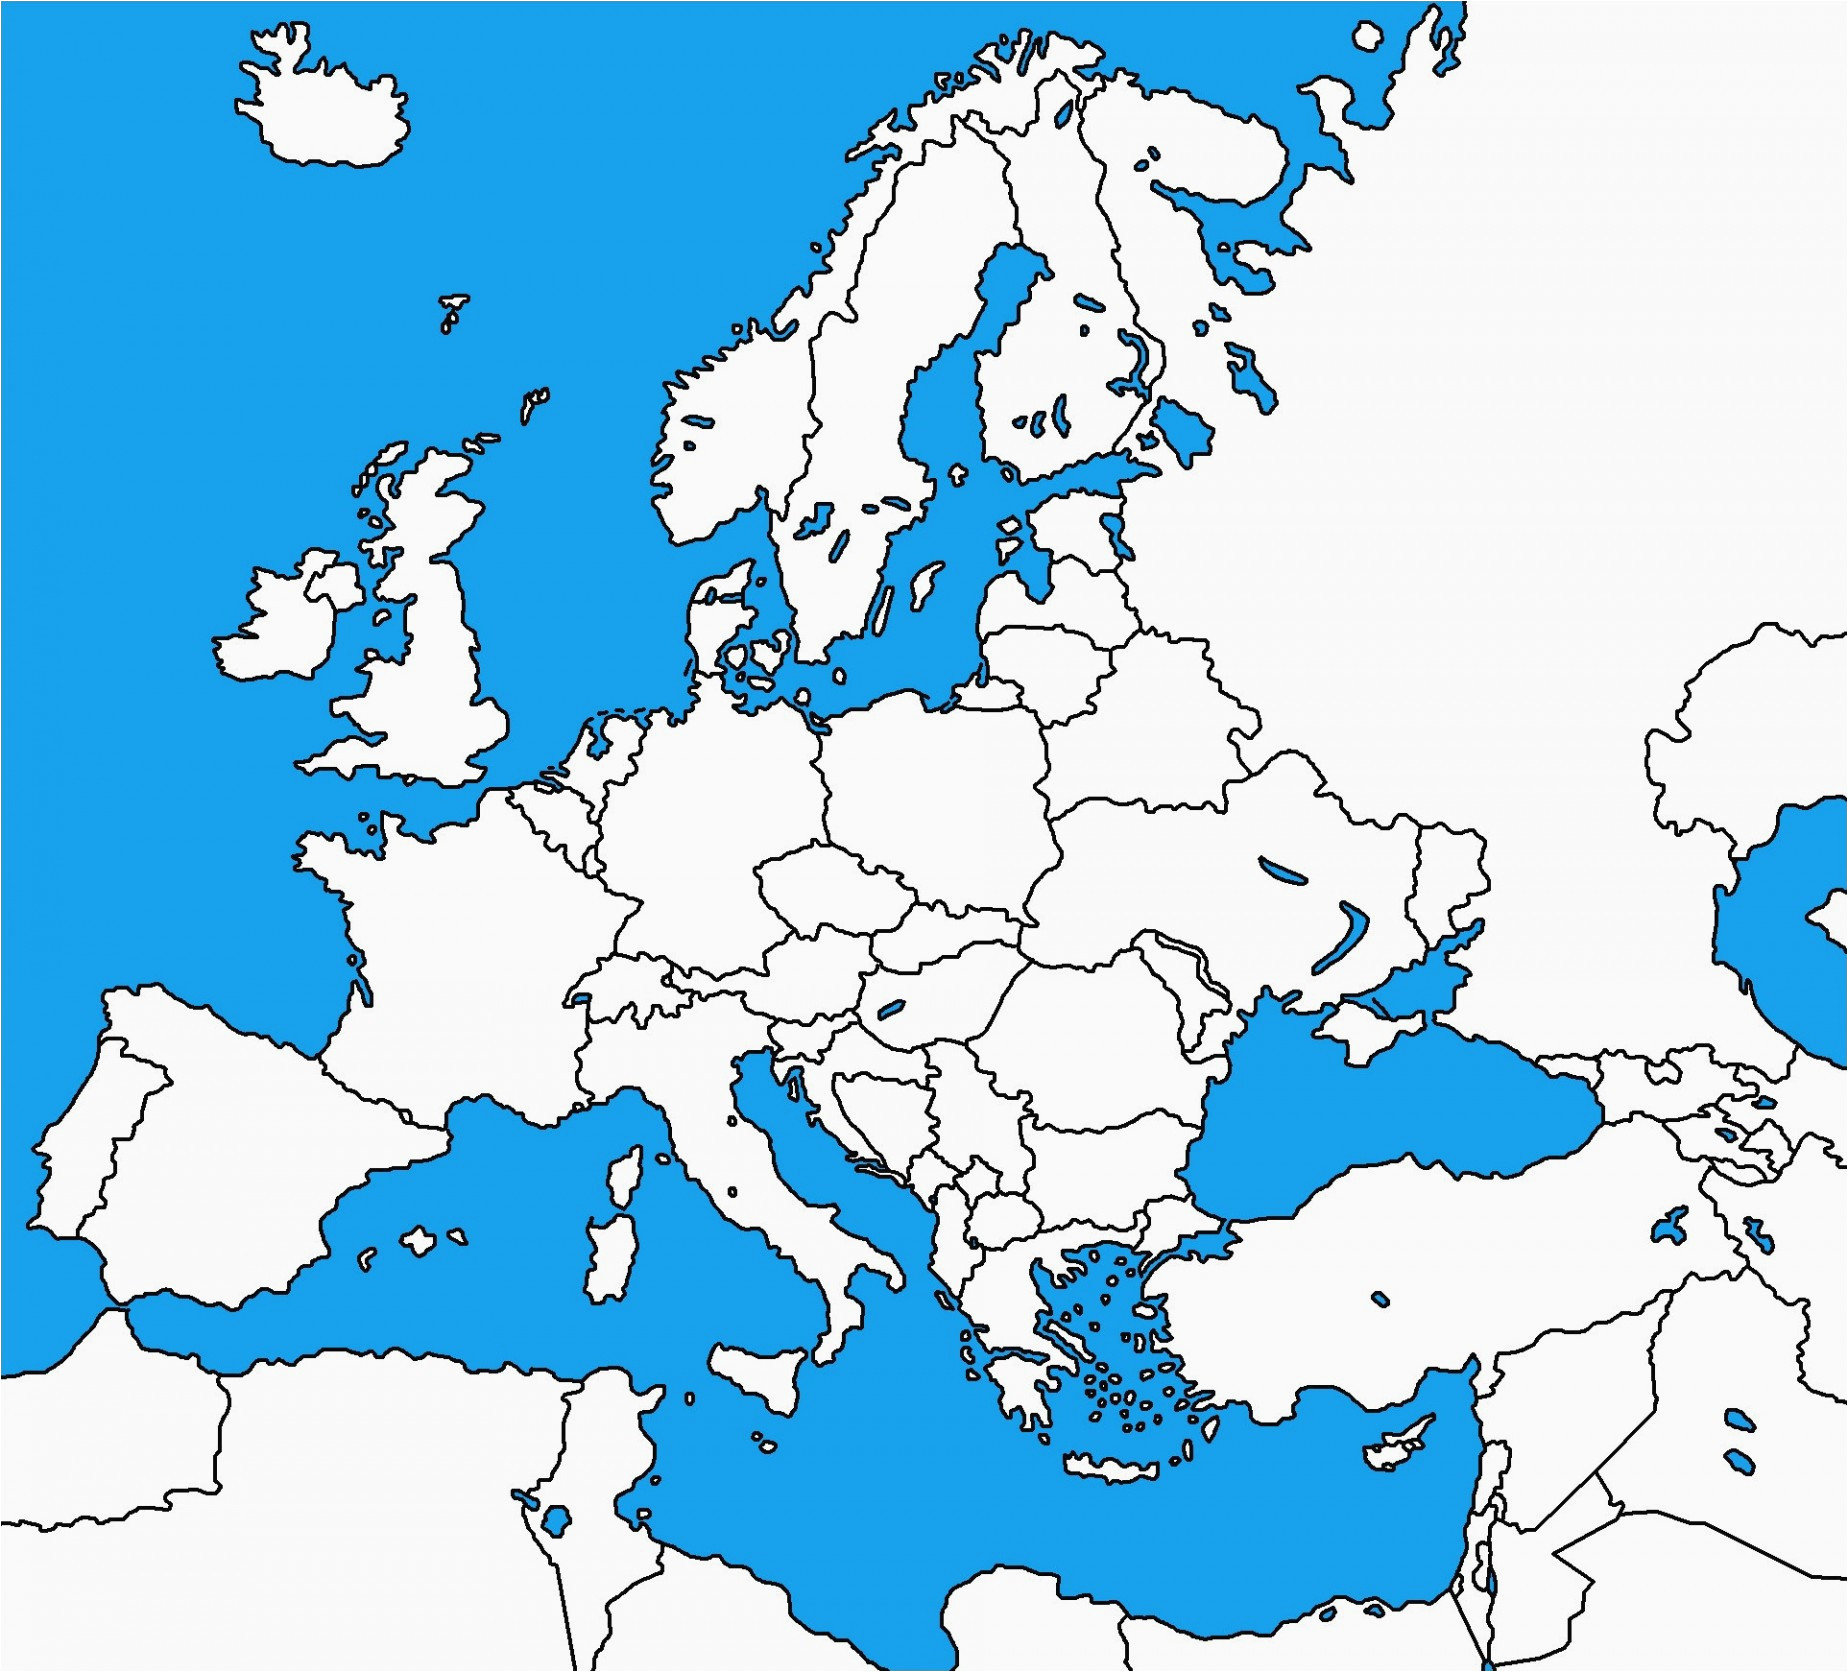 map of europe unlabeled climatejourney org